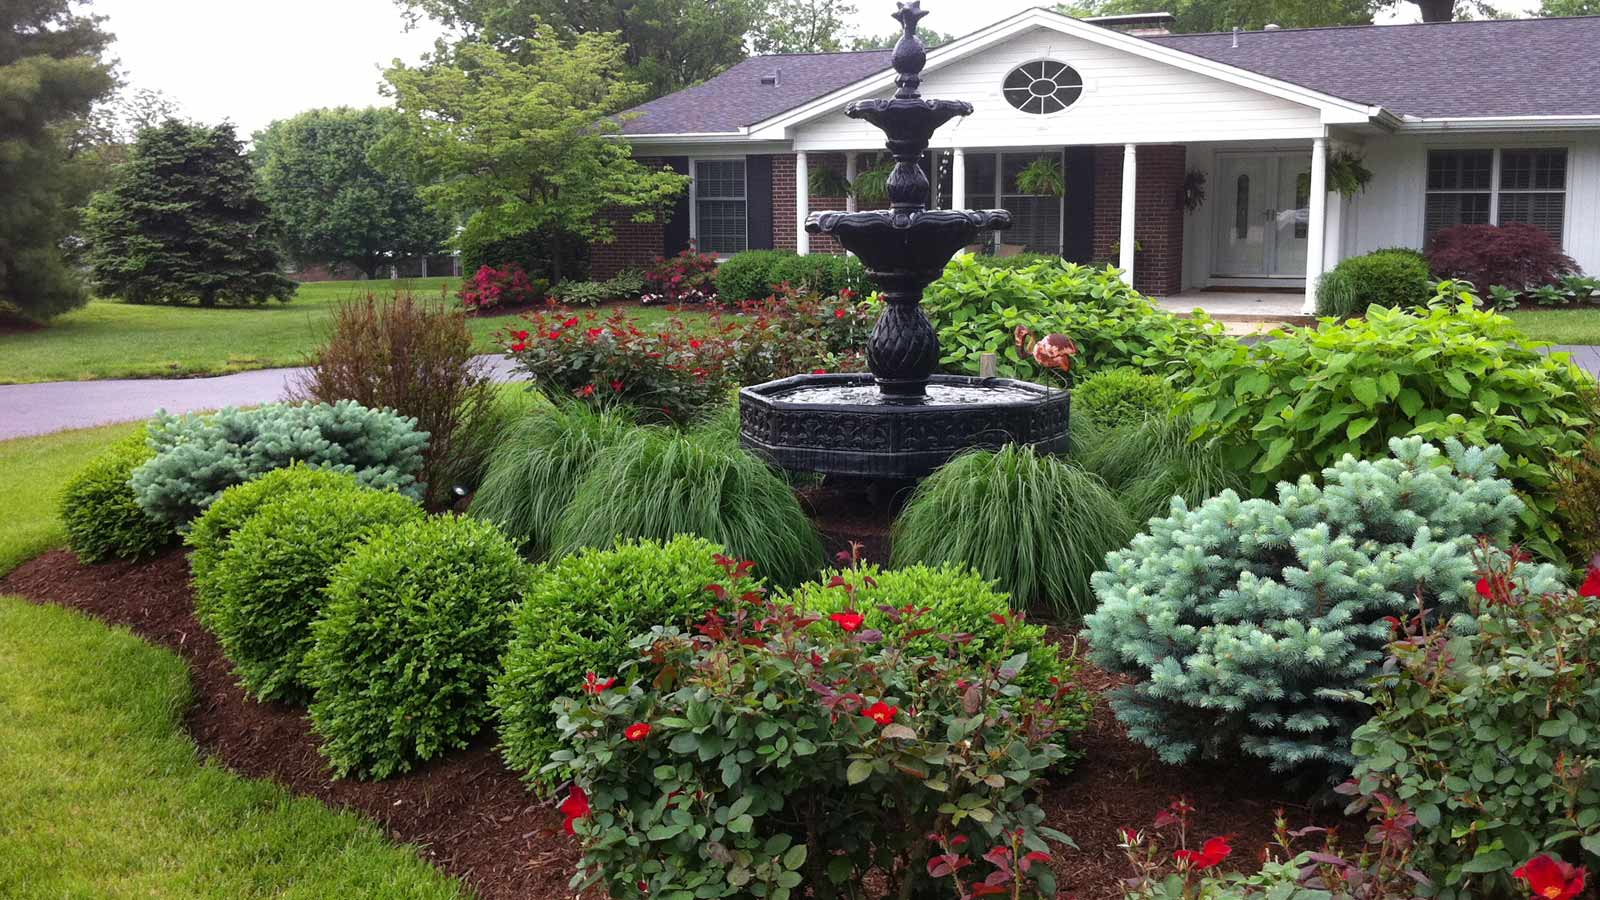 Residential landscape landscaping residential design for Garden design landscaping ideas